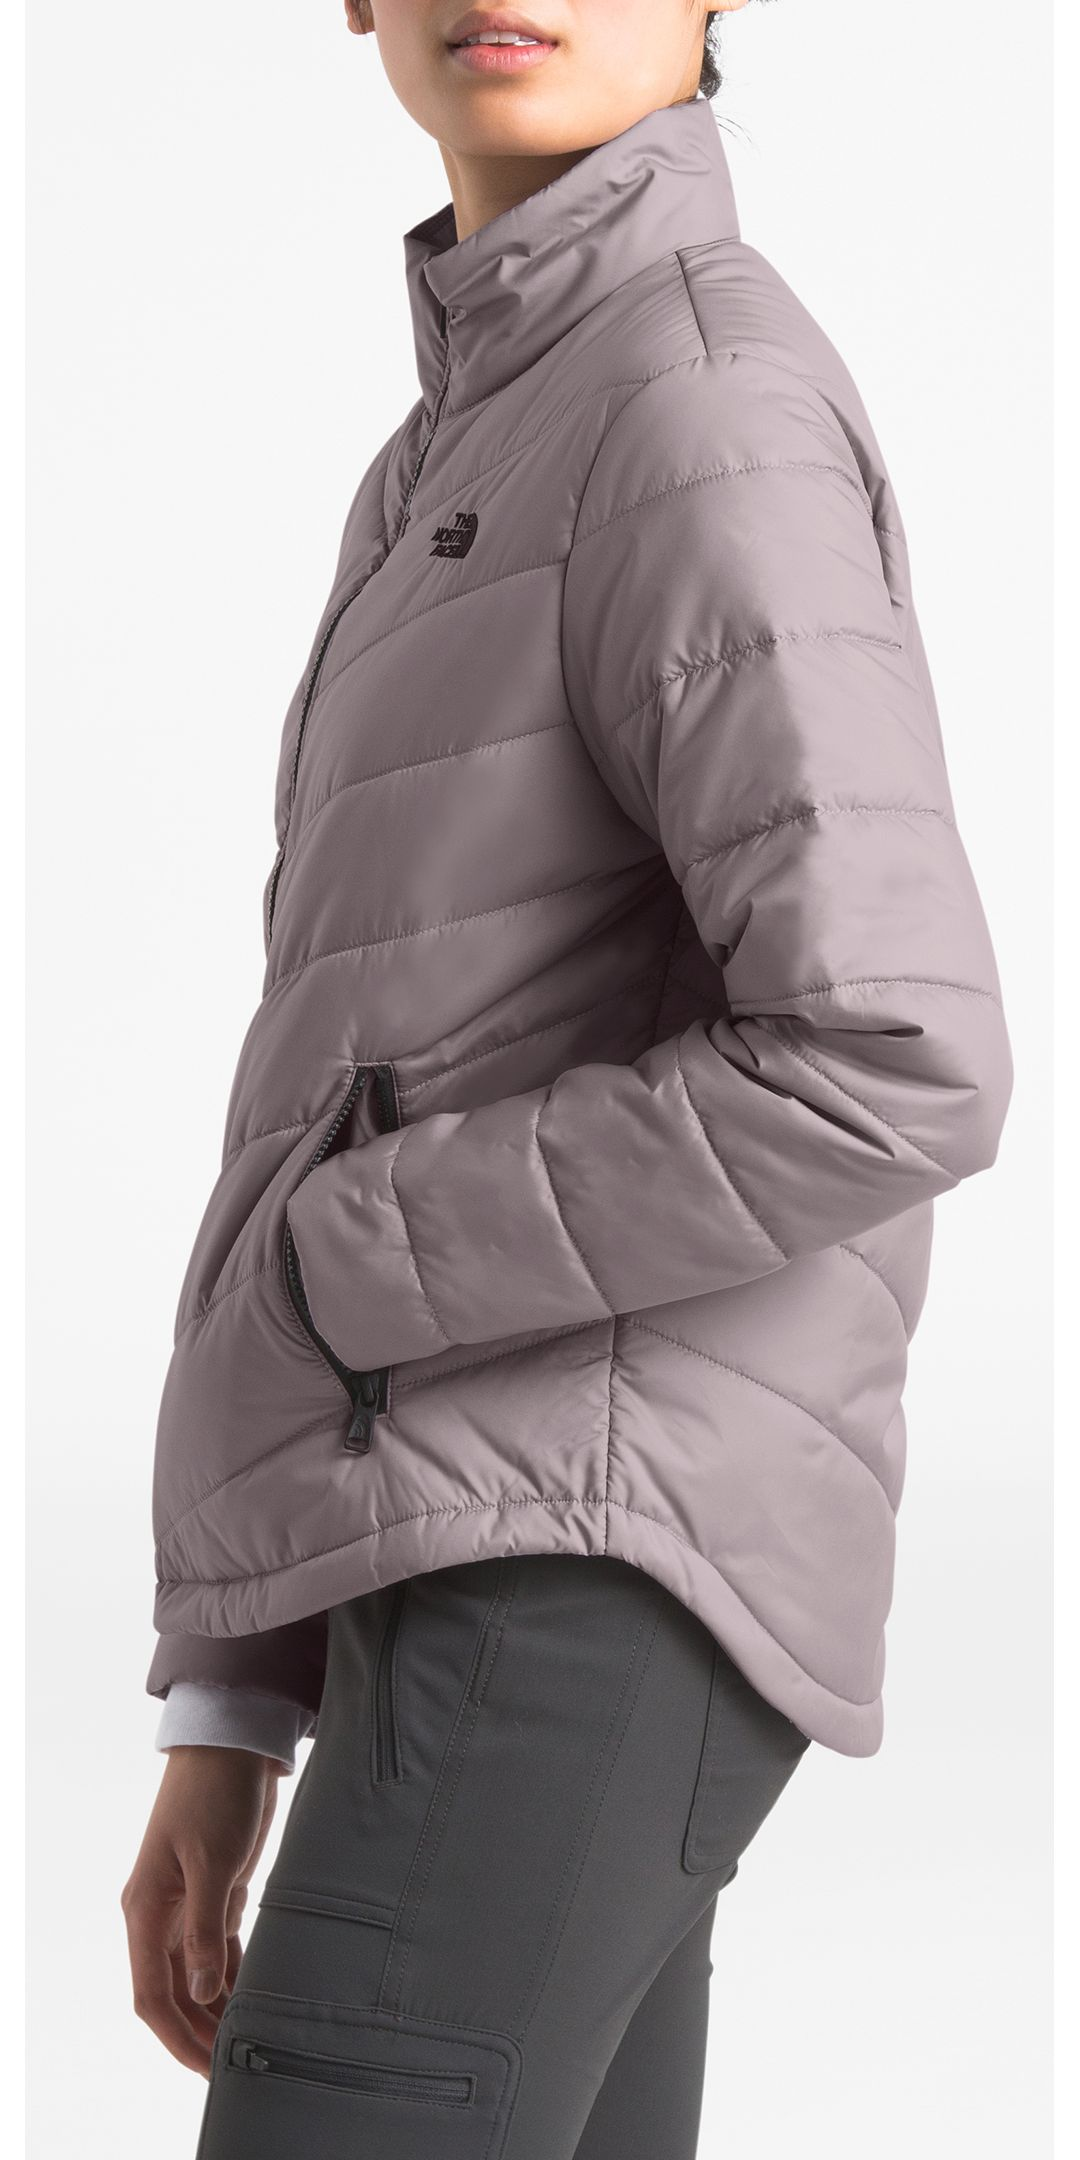 560c65c36 The North Face Women's Tamburello 2 Jacket